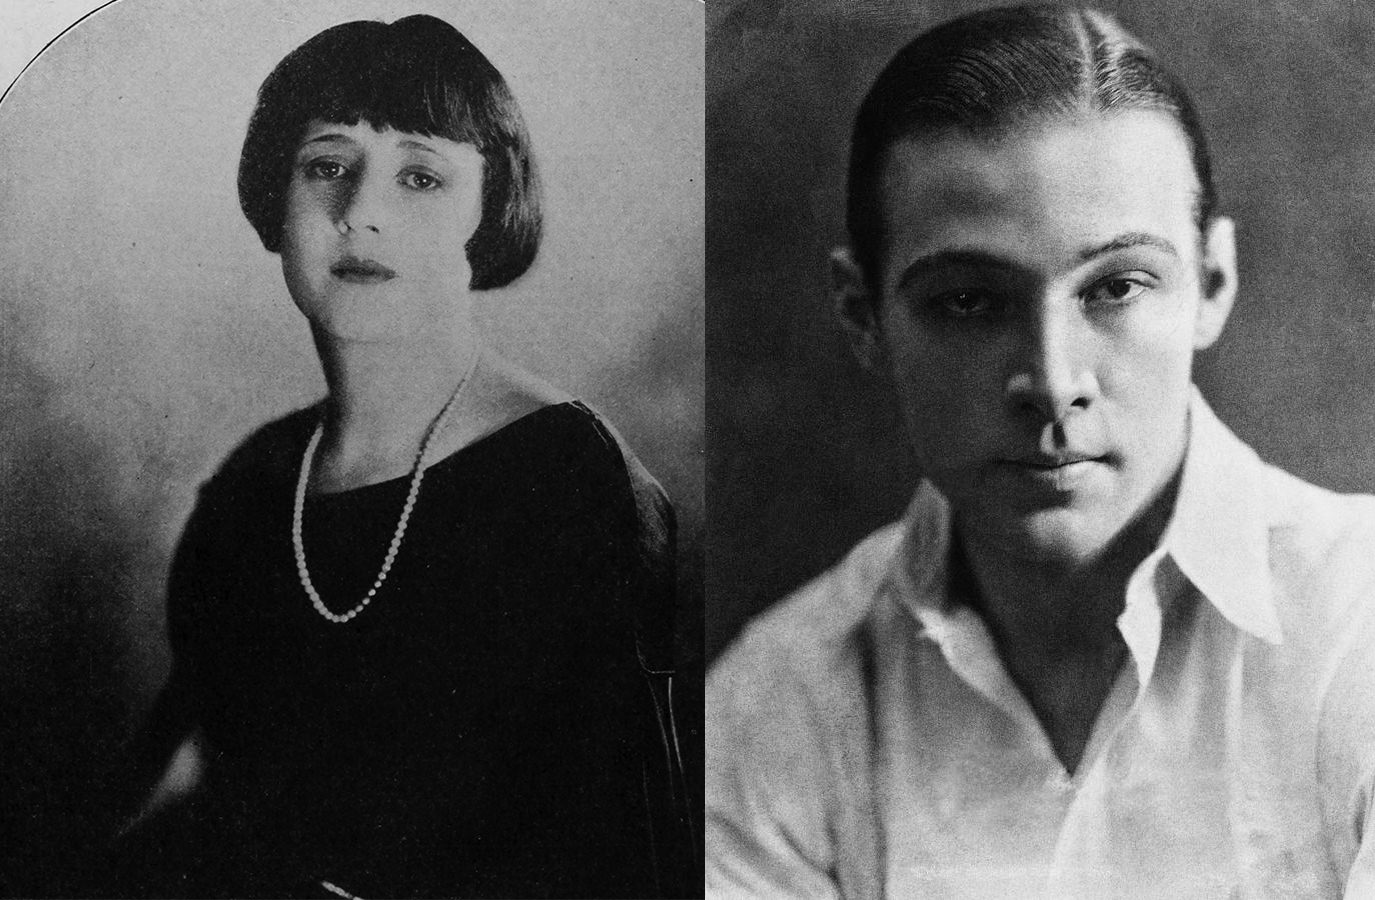 Picture of Rudolph Valentino and Jean Acker